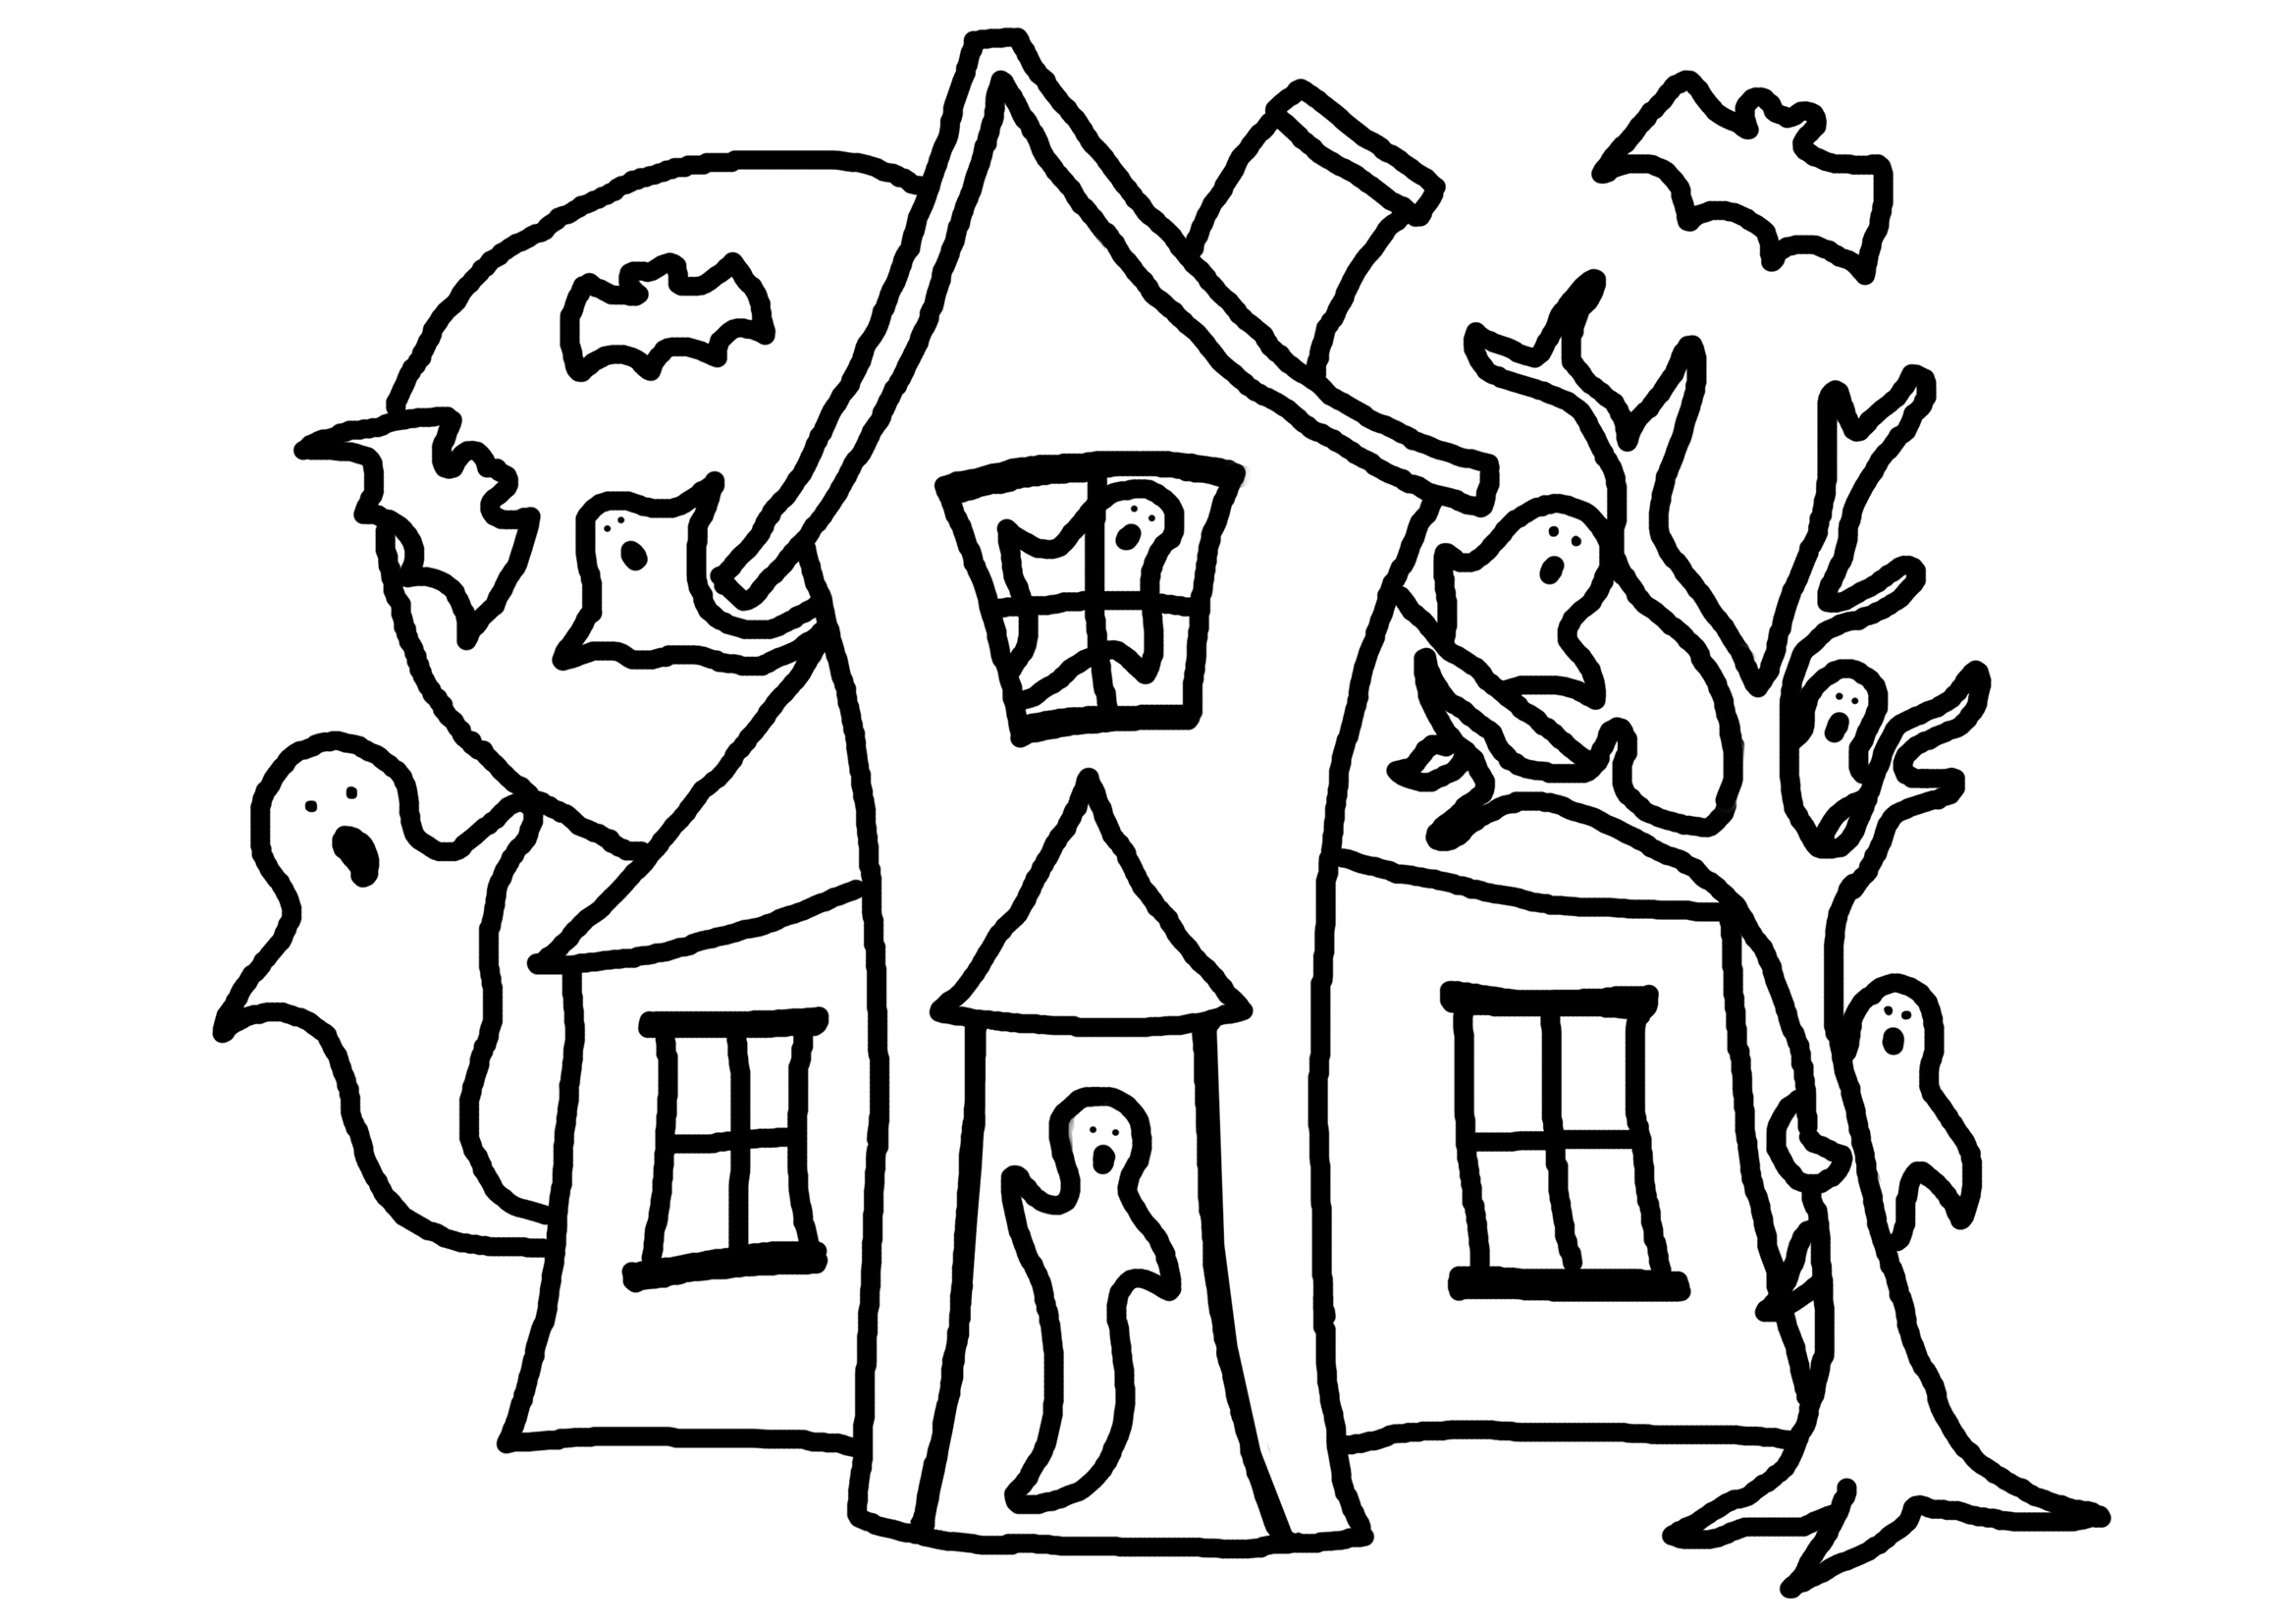 spooky house coloring pages haunted house coloring pages coloring pages to download spooky coloring pages house